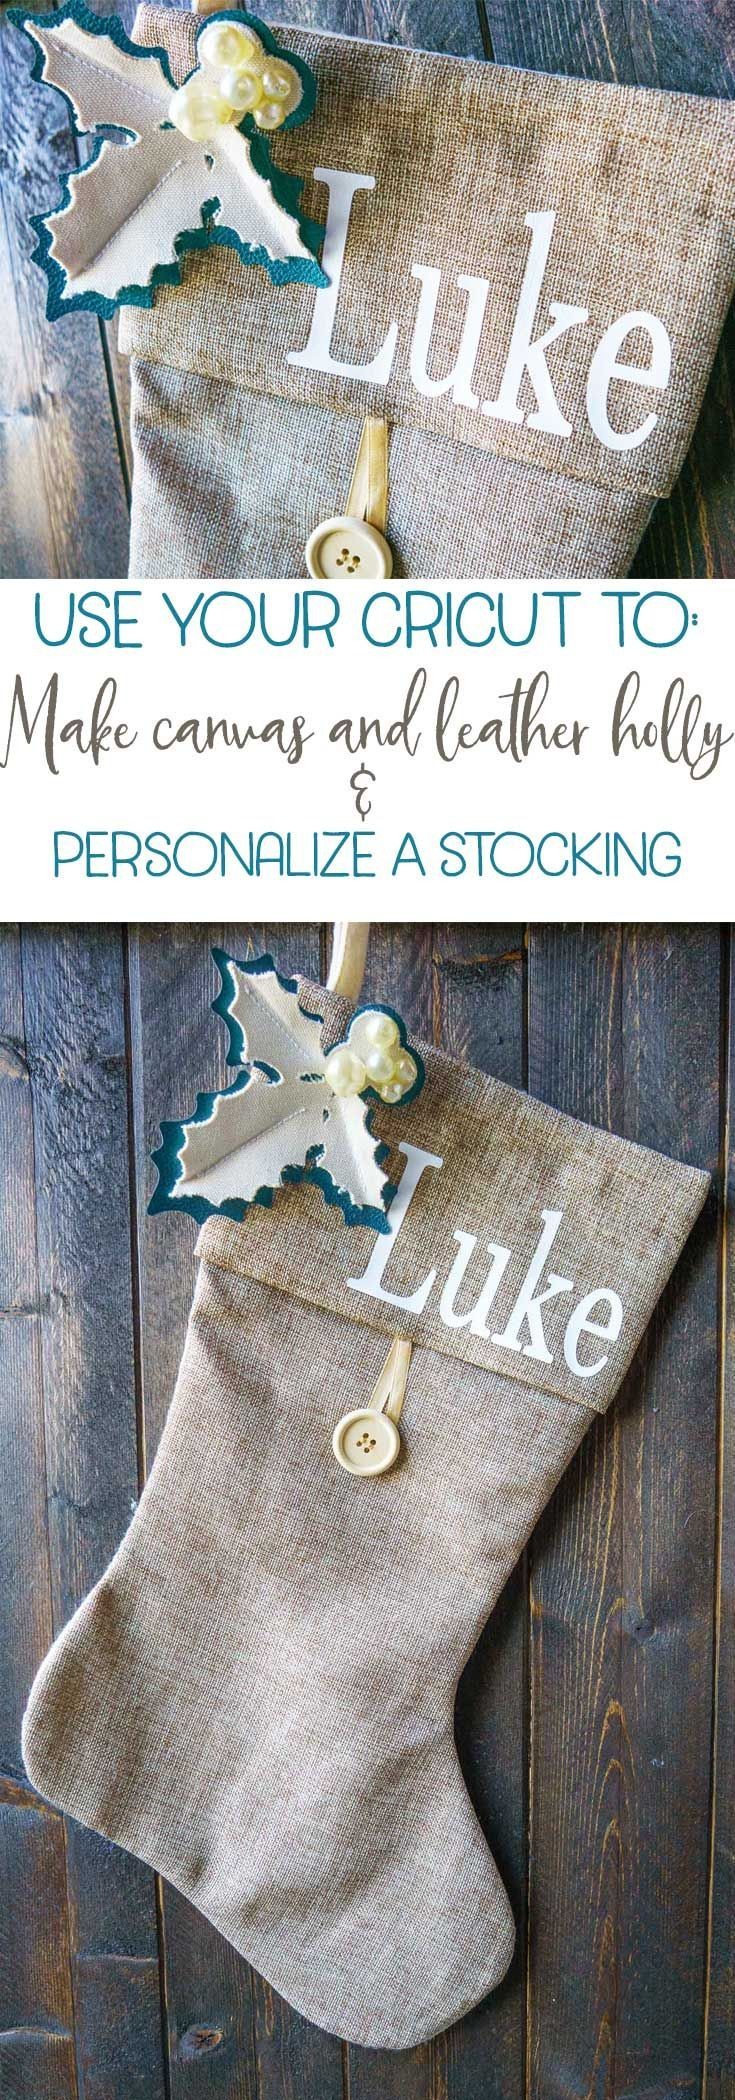 Level up a store bought stocking with homemade holly from leather and canvas on a Cricut machine. Add fonts to make it a personalized Christmas stocking! Cricut! #CricutHoliday #Cricutmade #Cricut #ad via @MrsMajorHoff